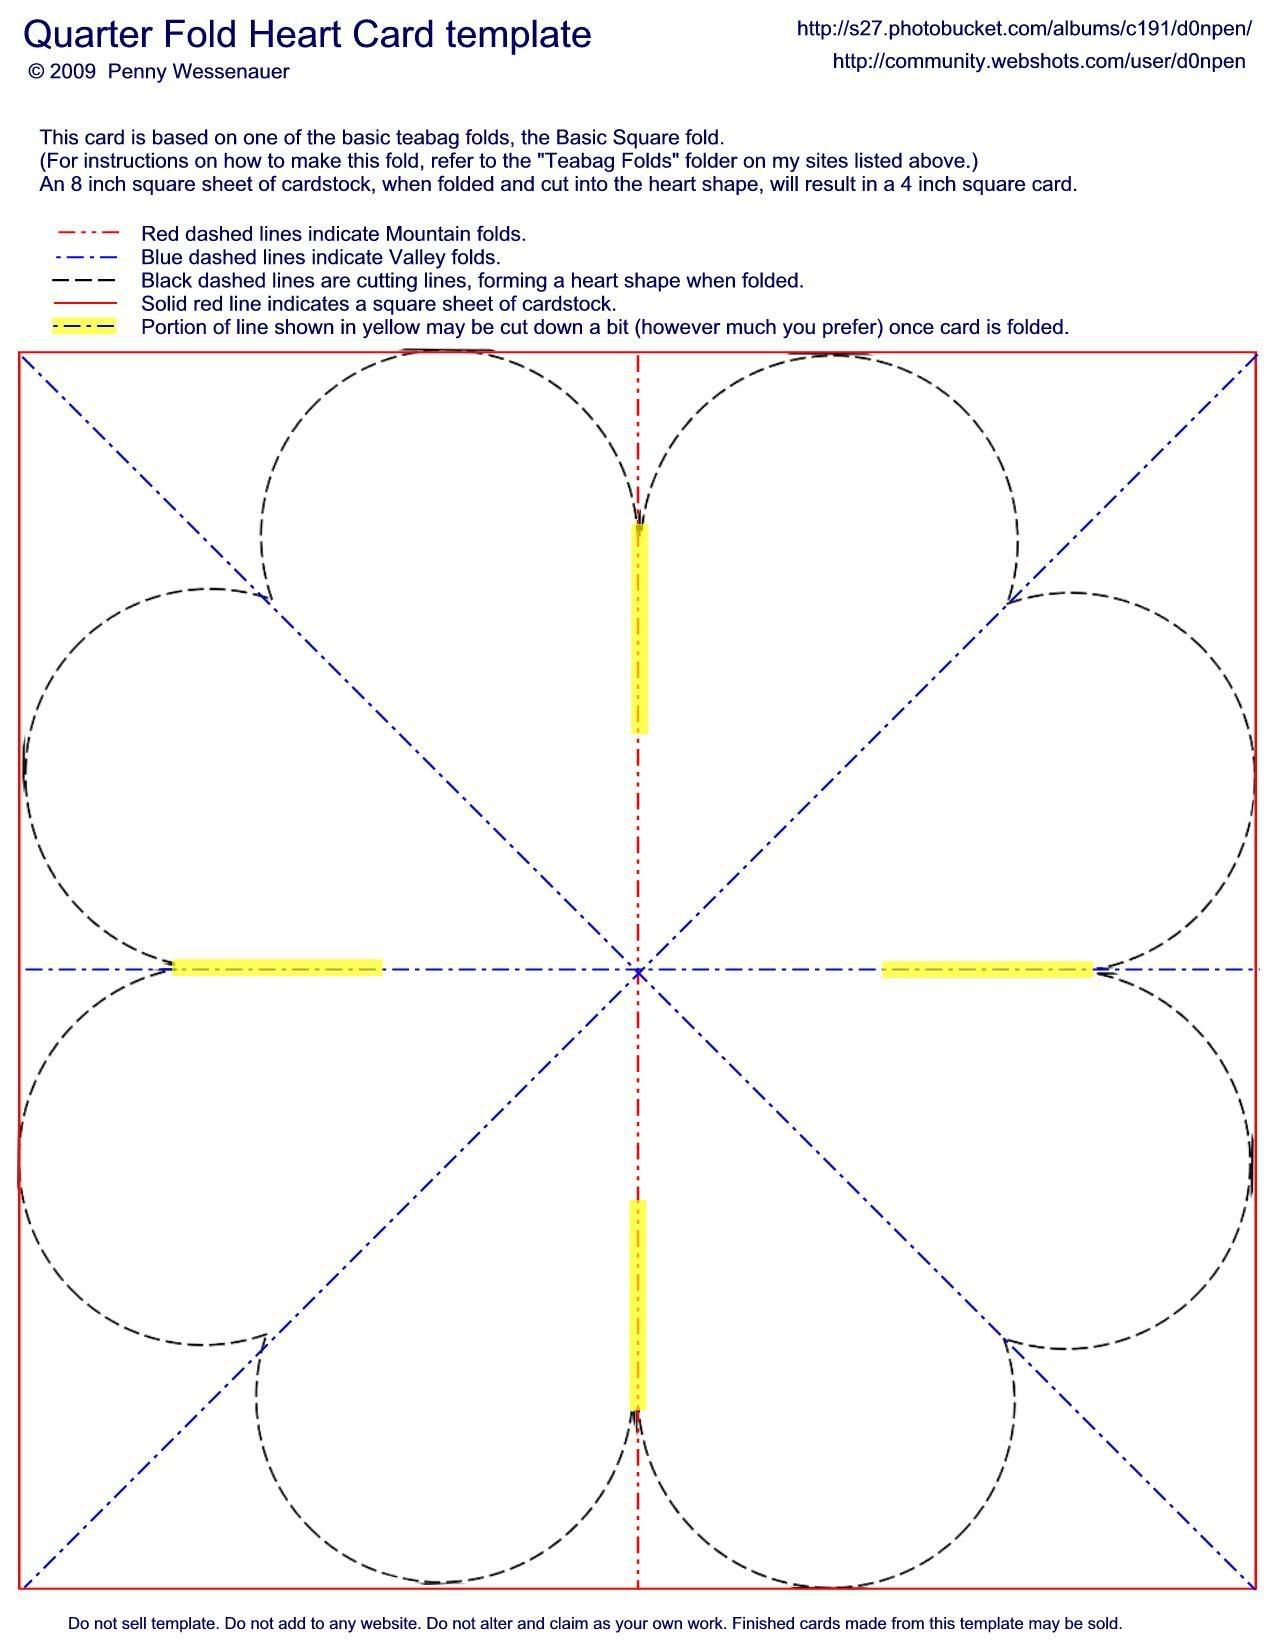 Card Templates :: Quarter Fold Heart Card image by d0npen ...